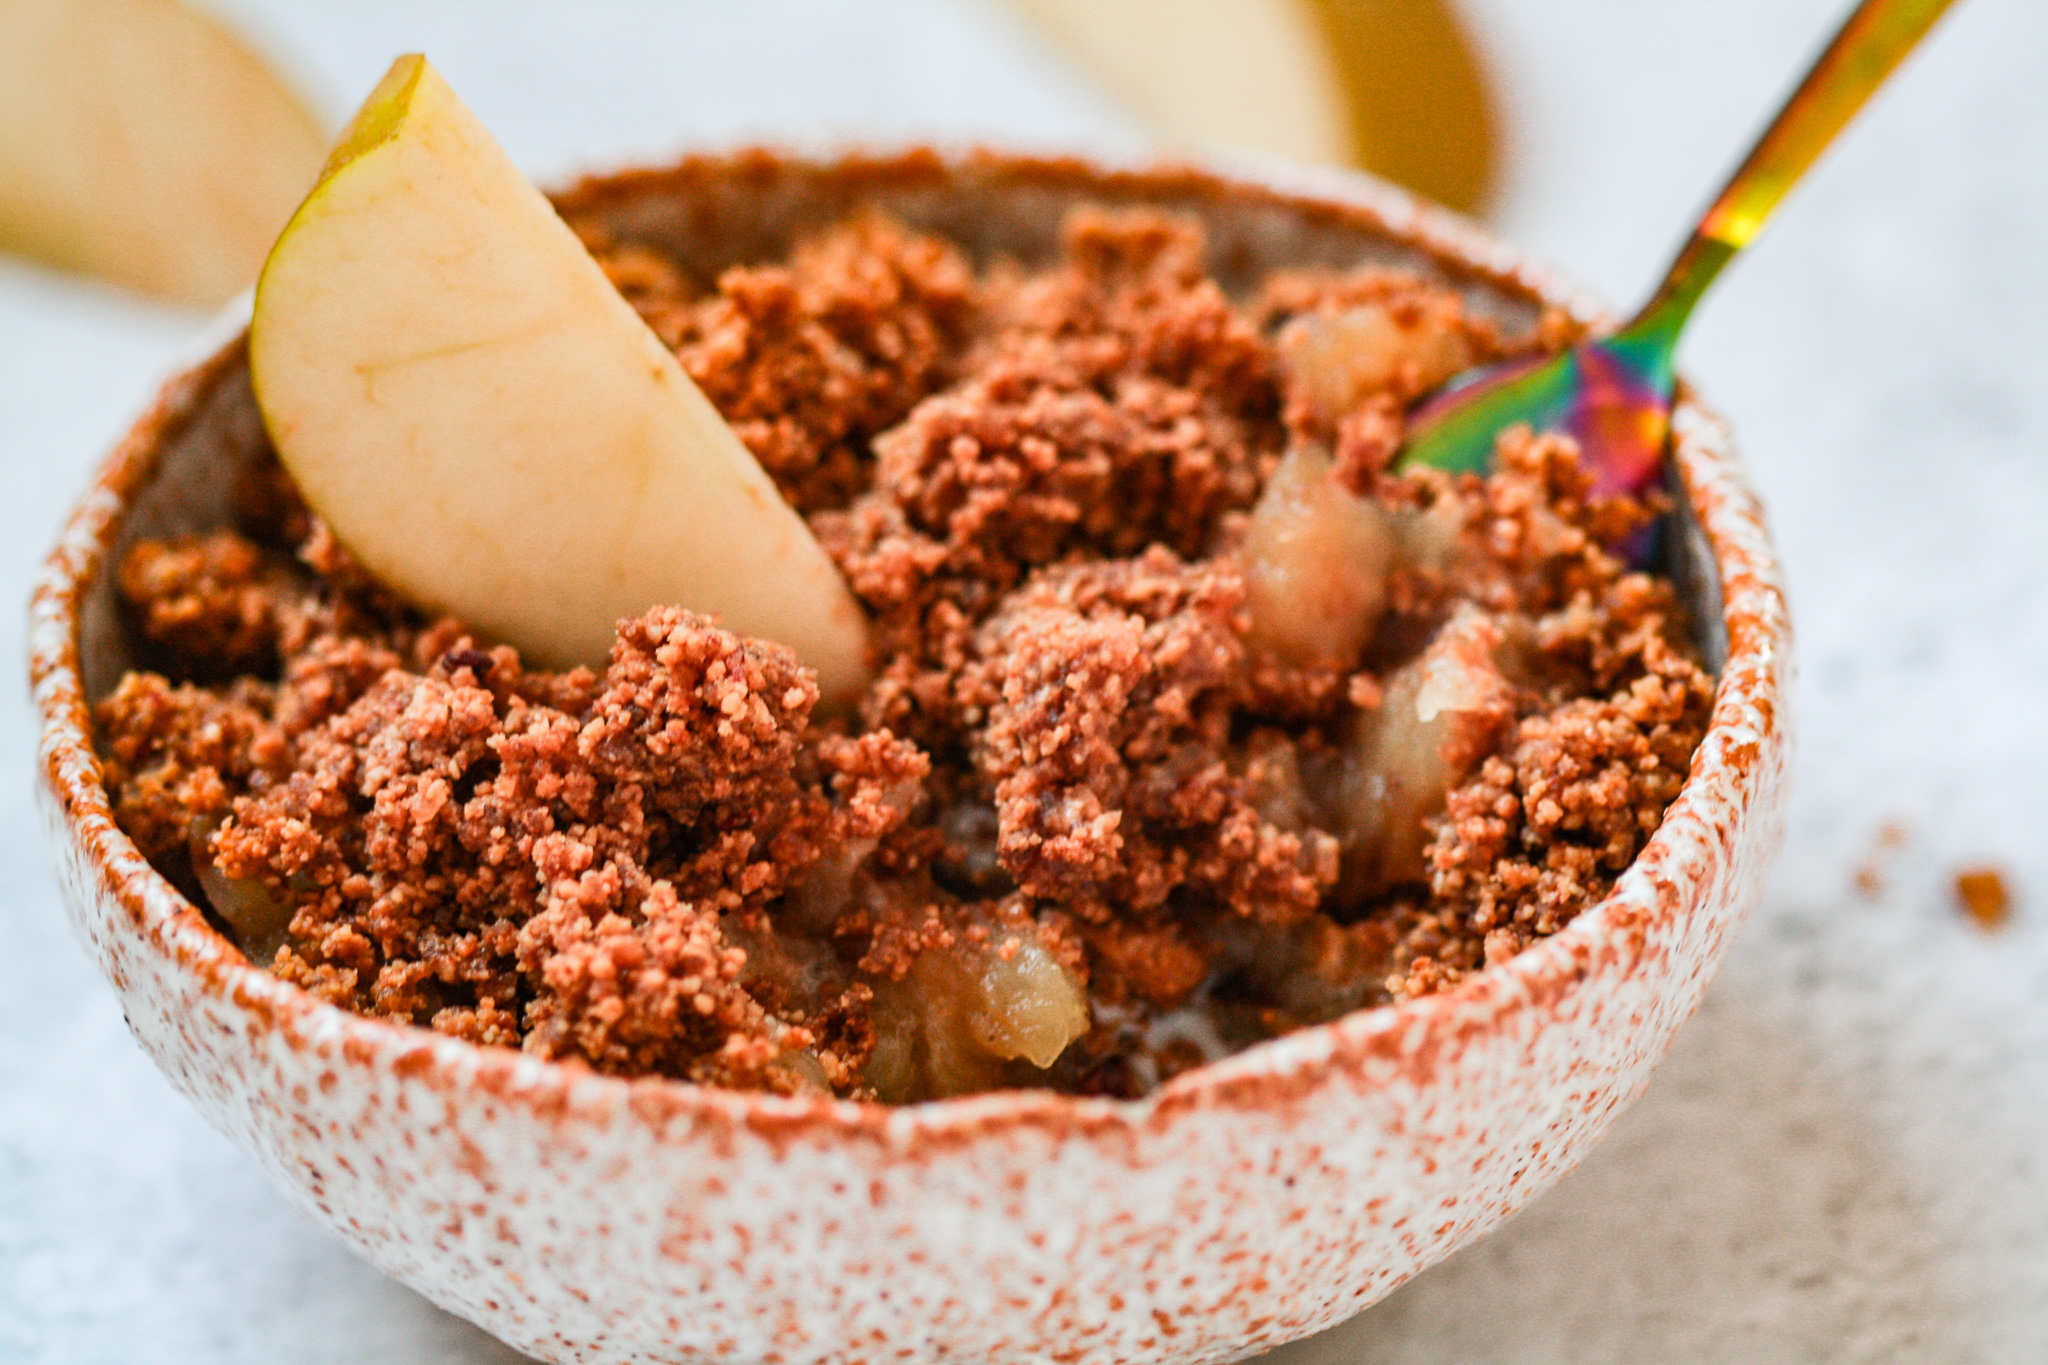 Almond & Cinnamon Crumble